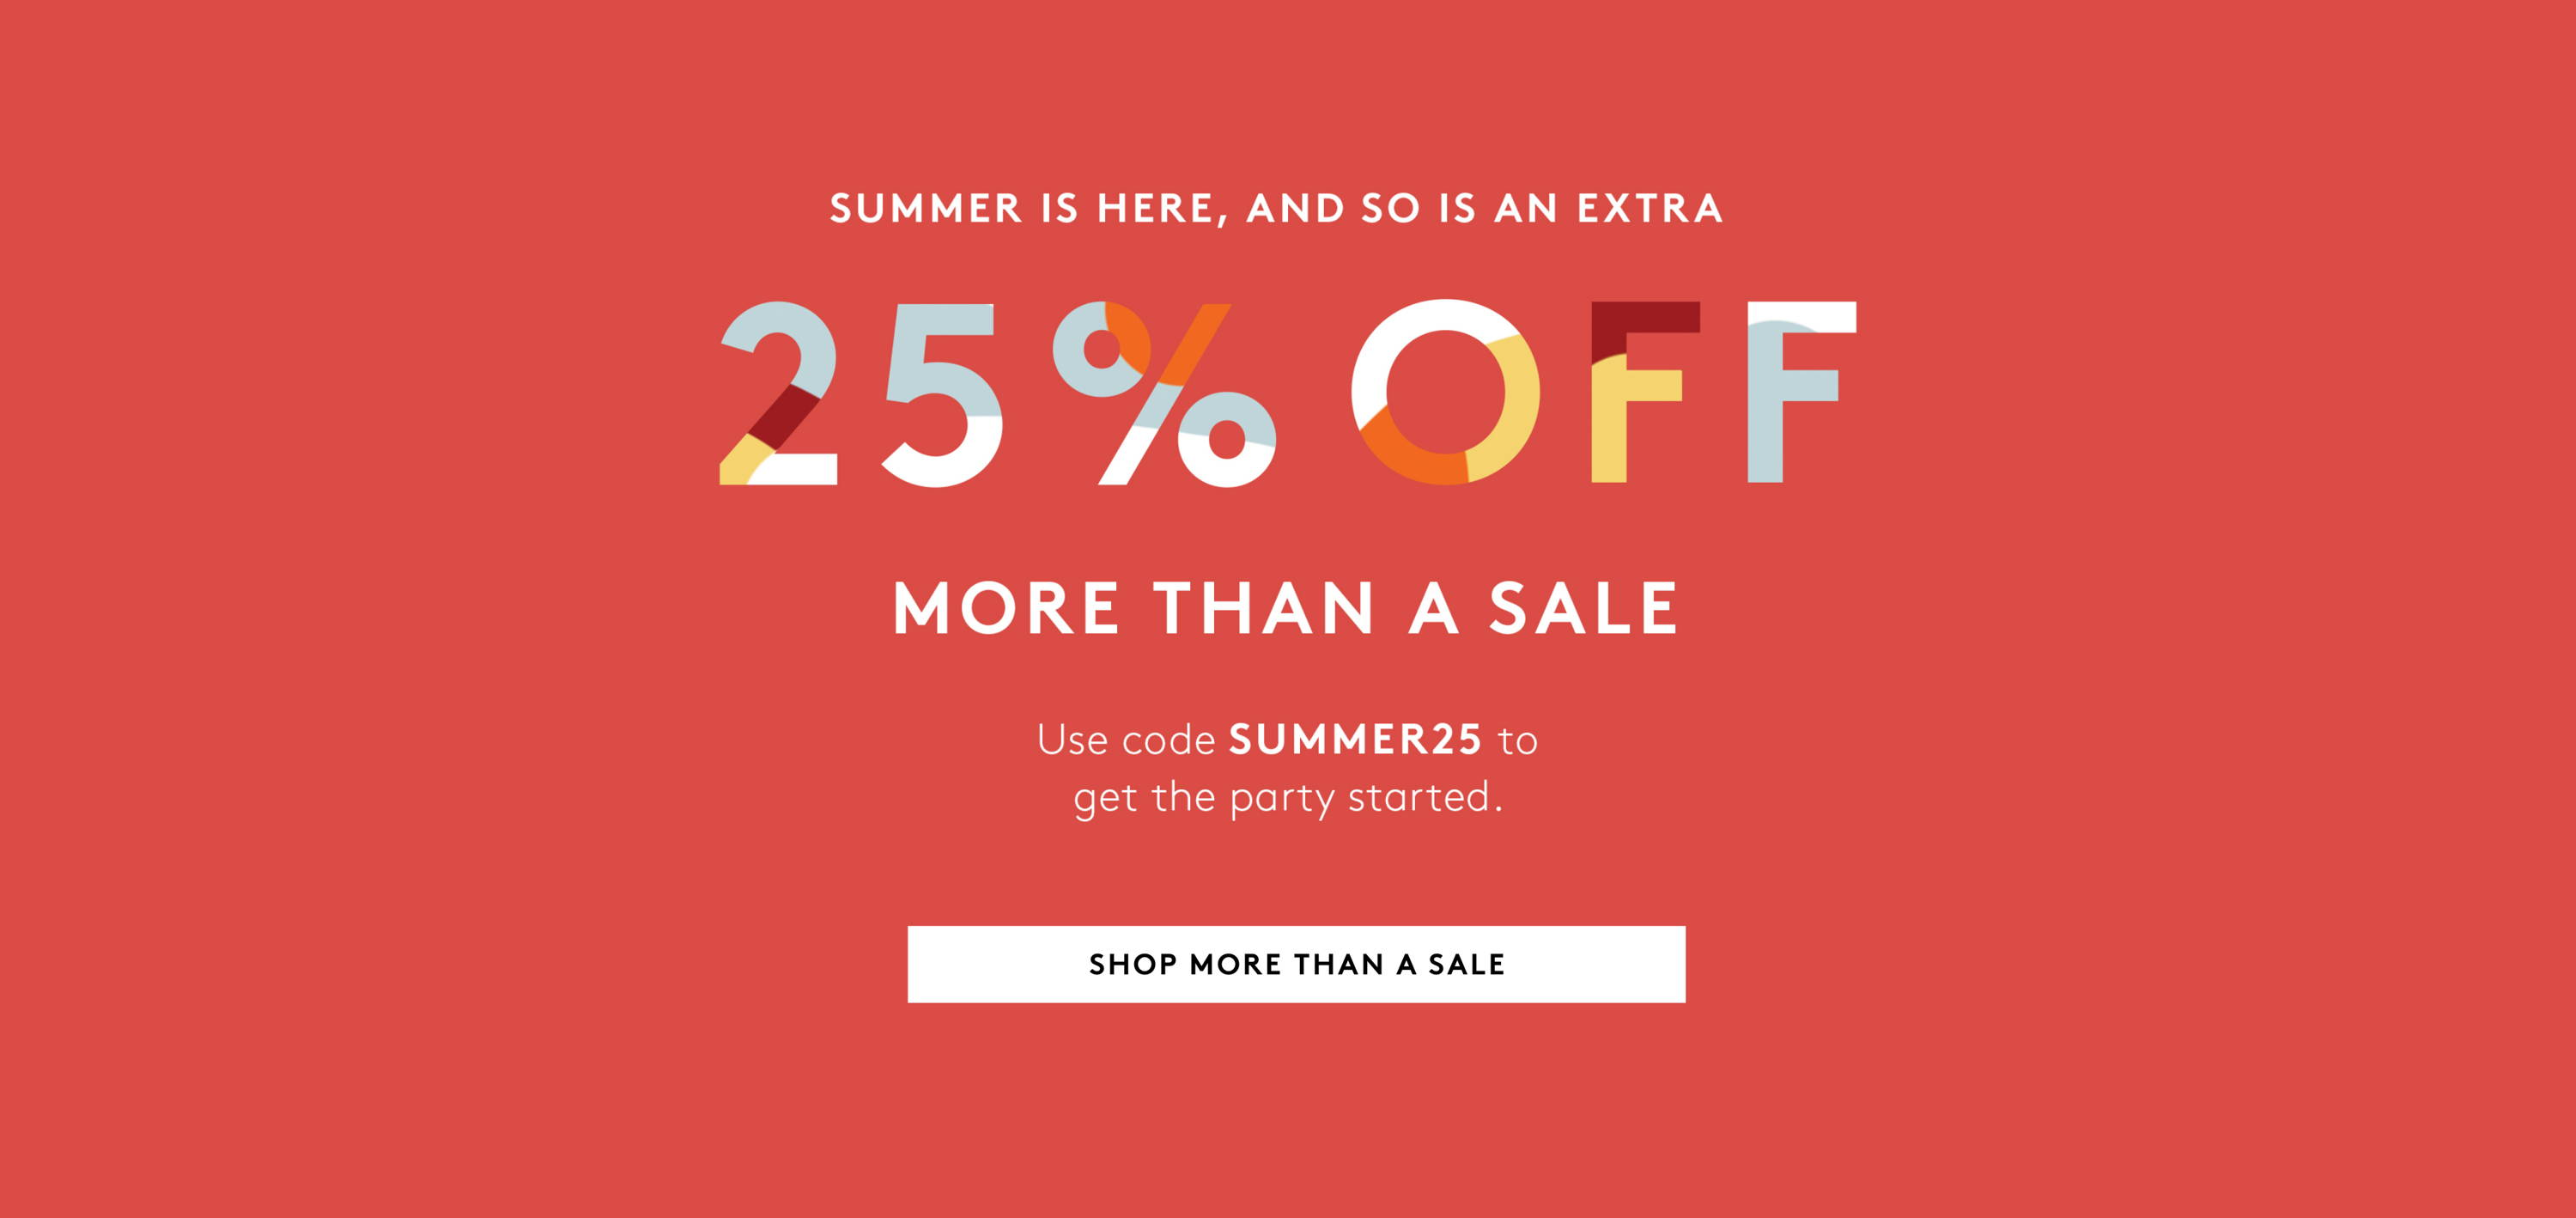 take 25% off more than a sale use code SUMMER25 to get the party started